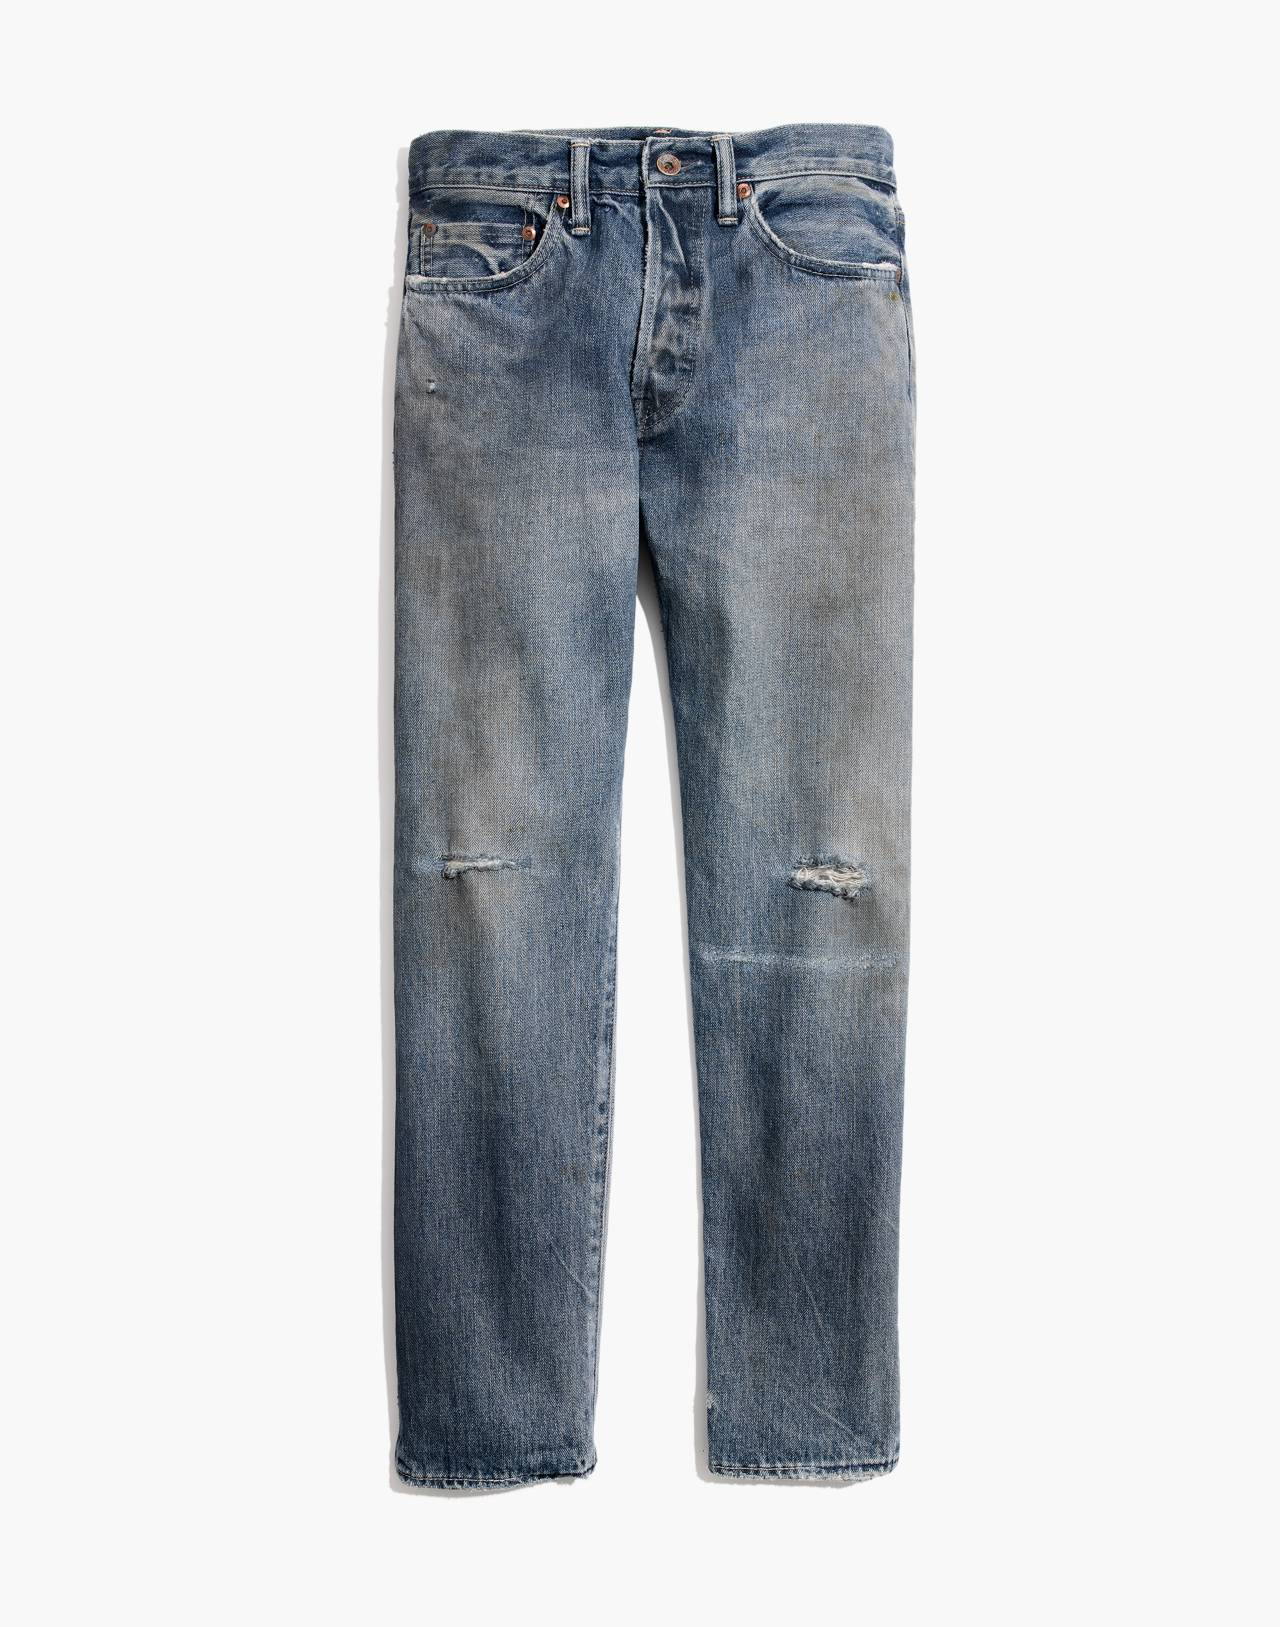 Chimala® Selvedge Narrow Tapered Cut Jeans in light distressed image 4